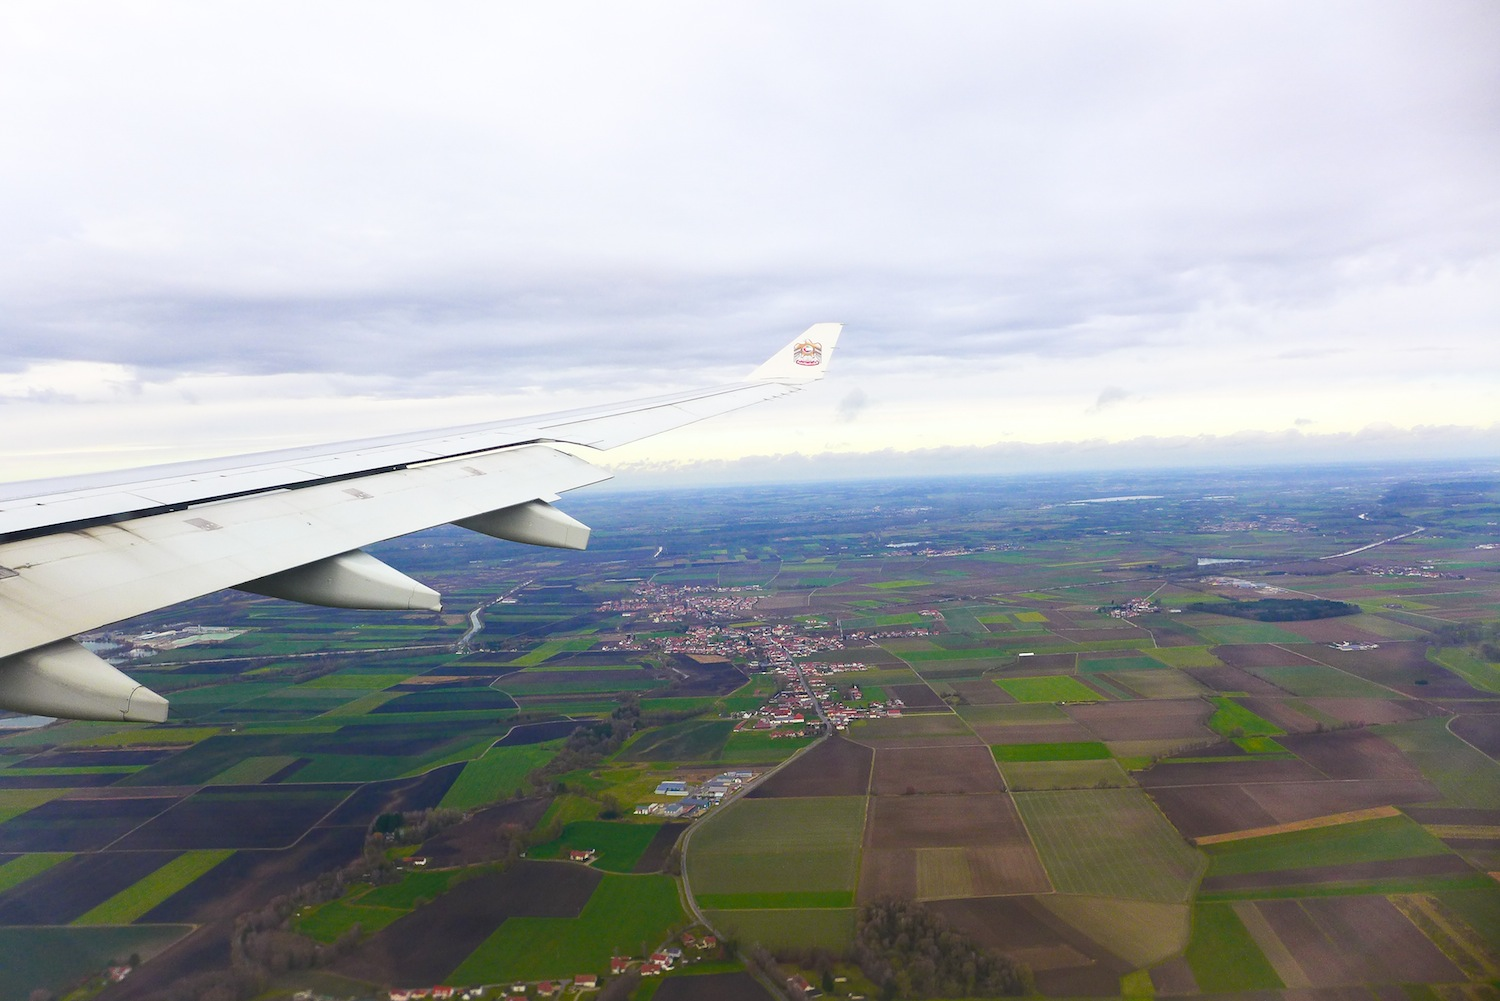 Getting ready for landing. A magnificent view from above while we were descending towards Munich.